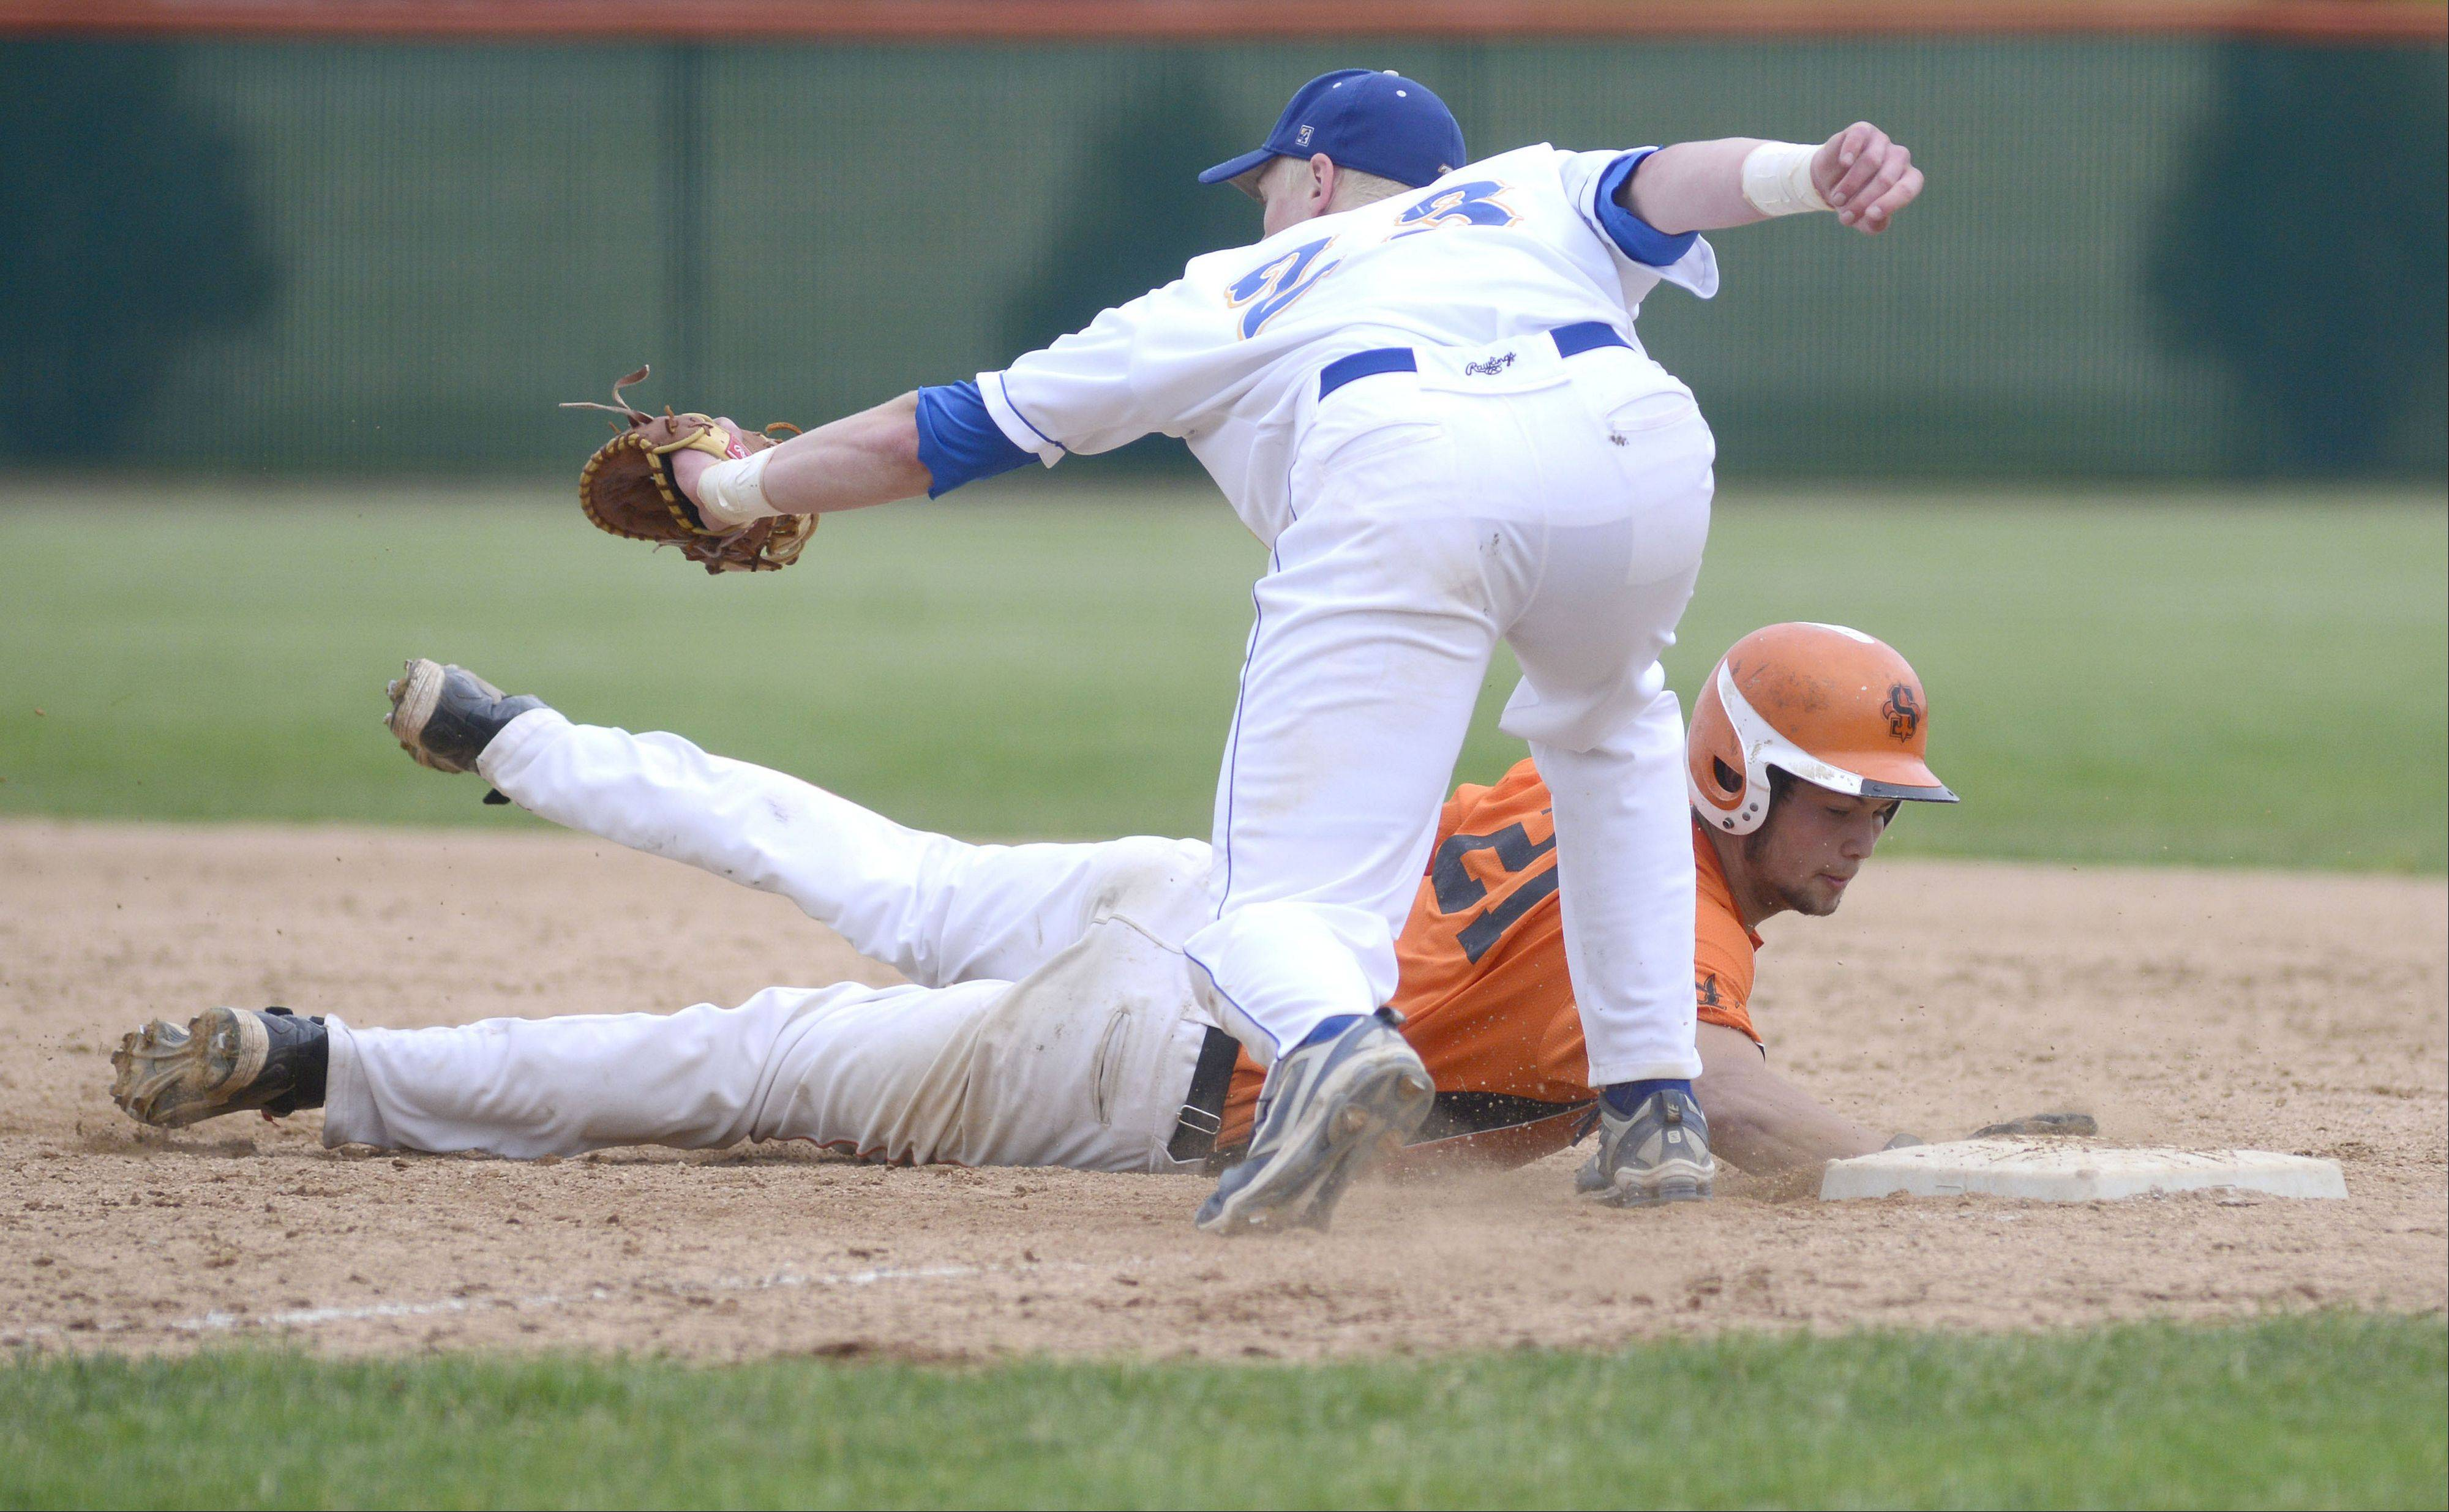 St. Charles East's Brannon Barry is safe from Wheaton North's John Peltz on first base in the third inning of the Class 4A sectional championship in St. Charles on Saturday, June 1.